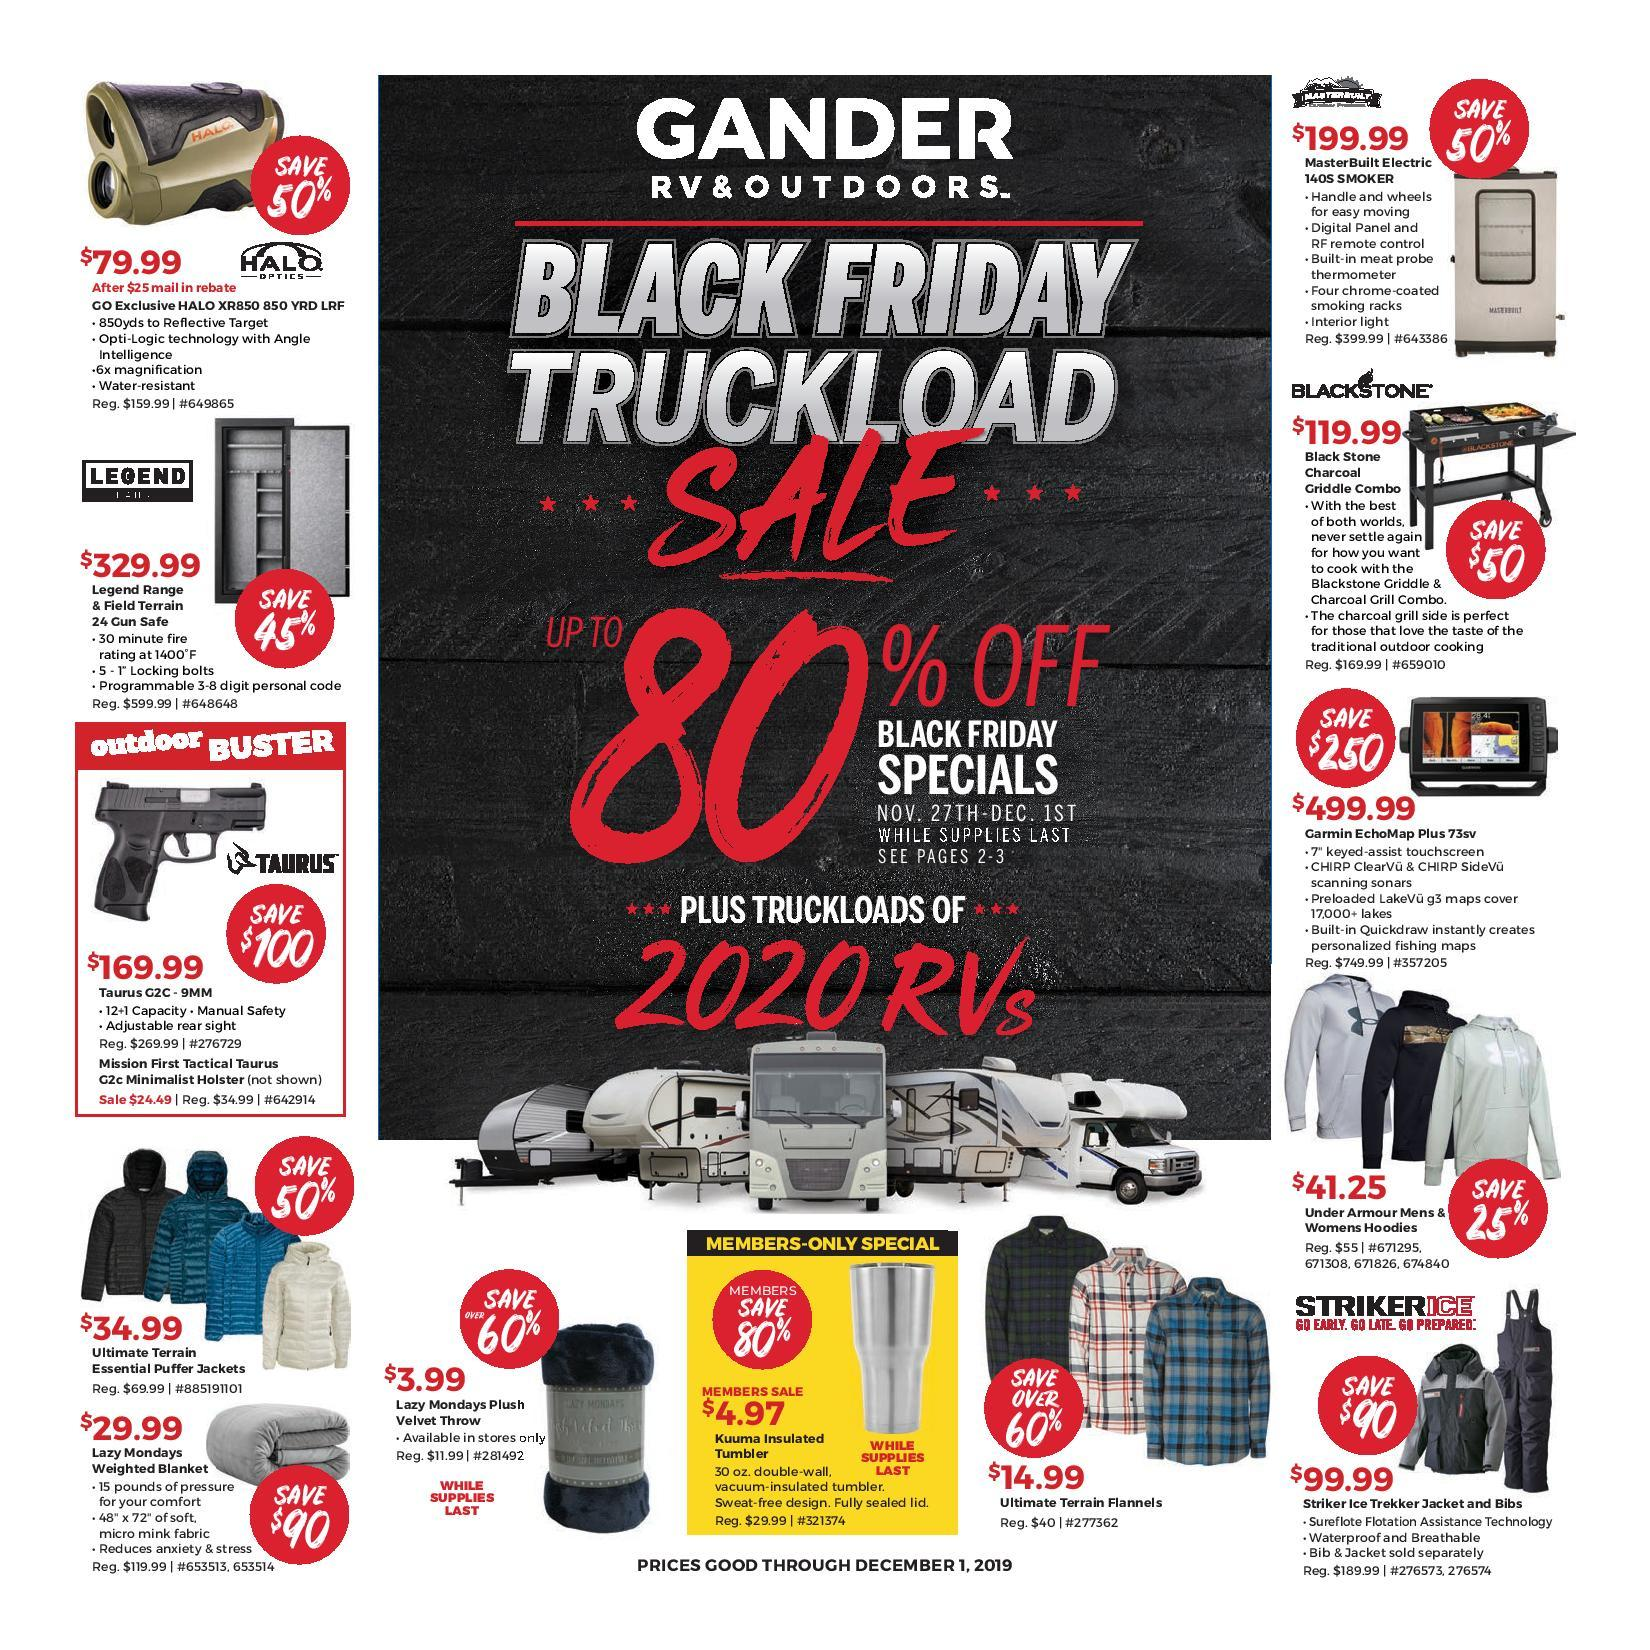 Gander Outdoors Black Friday 2020 Ad